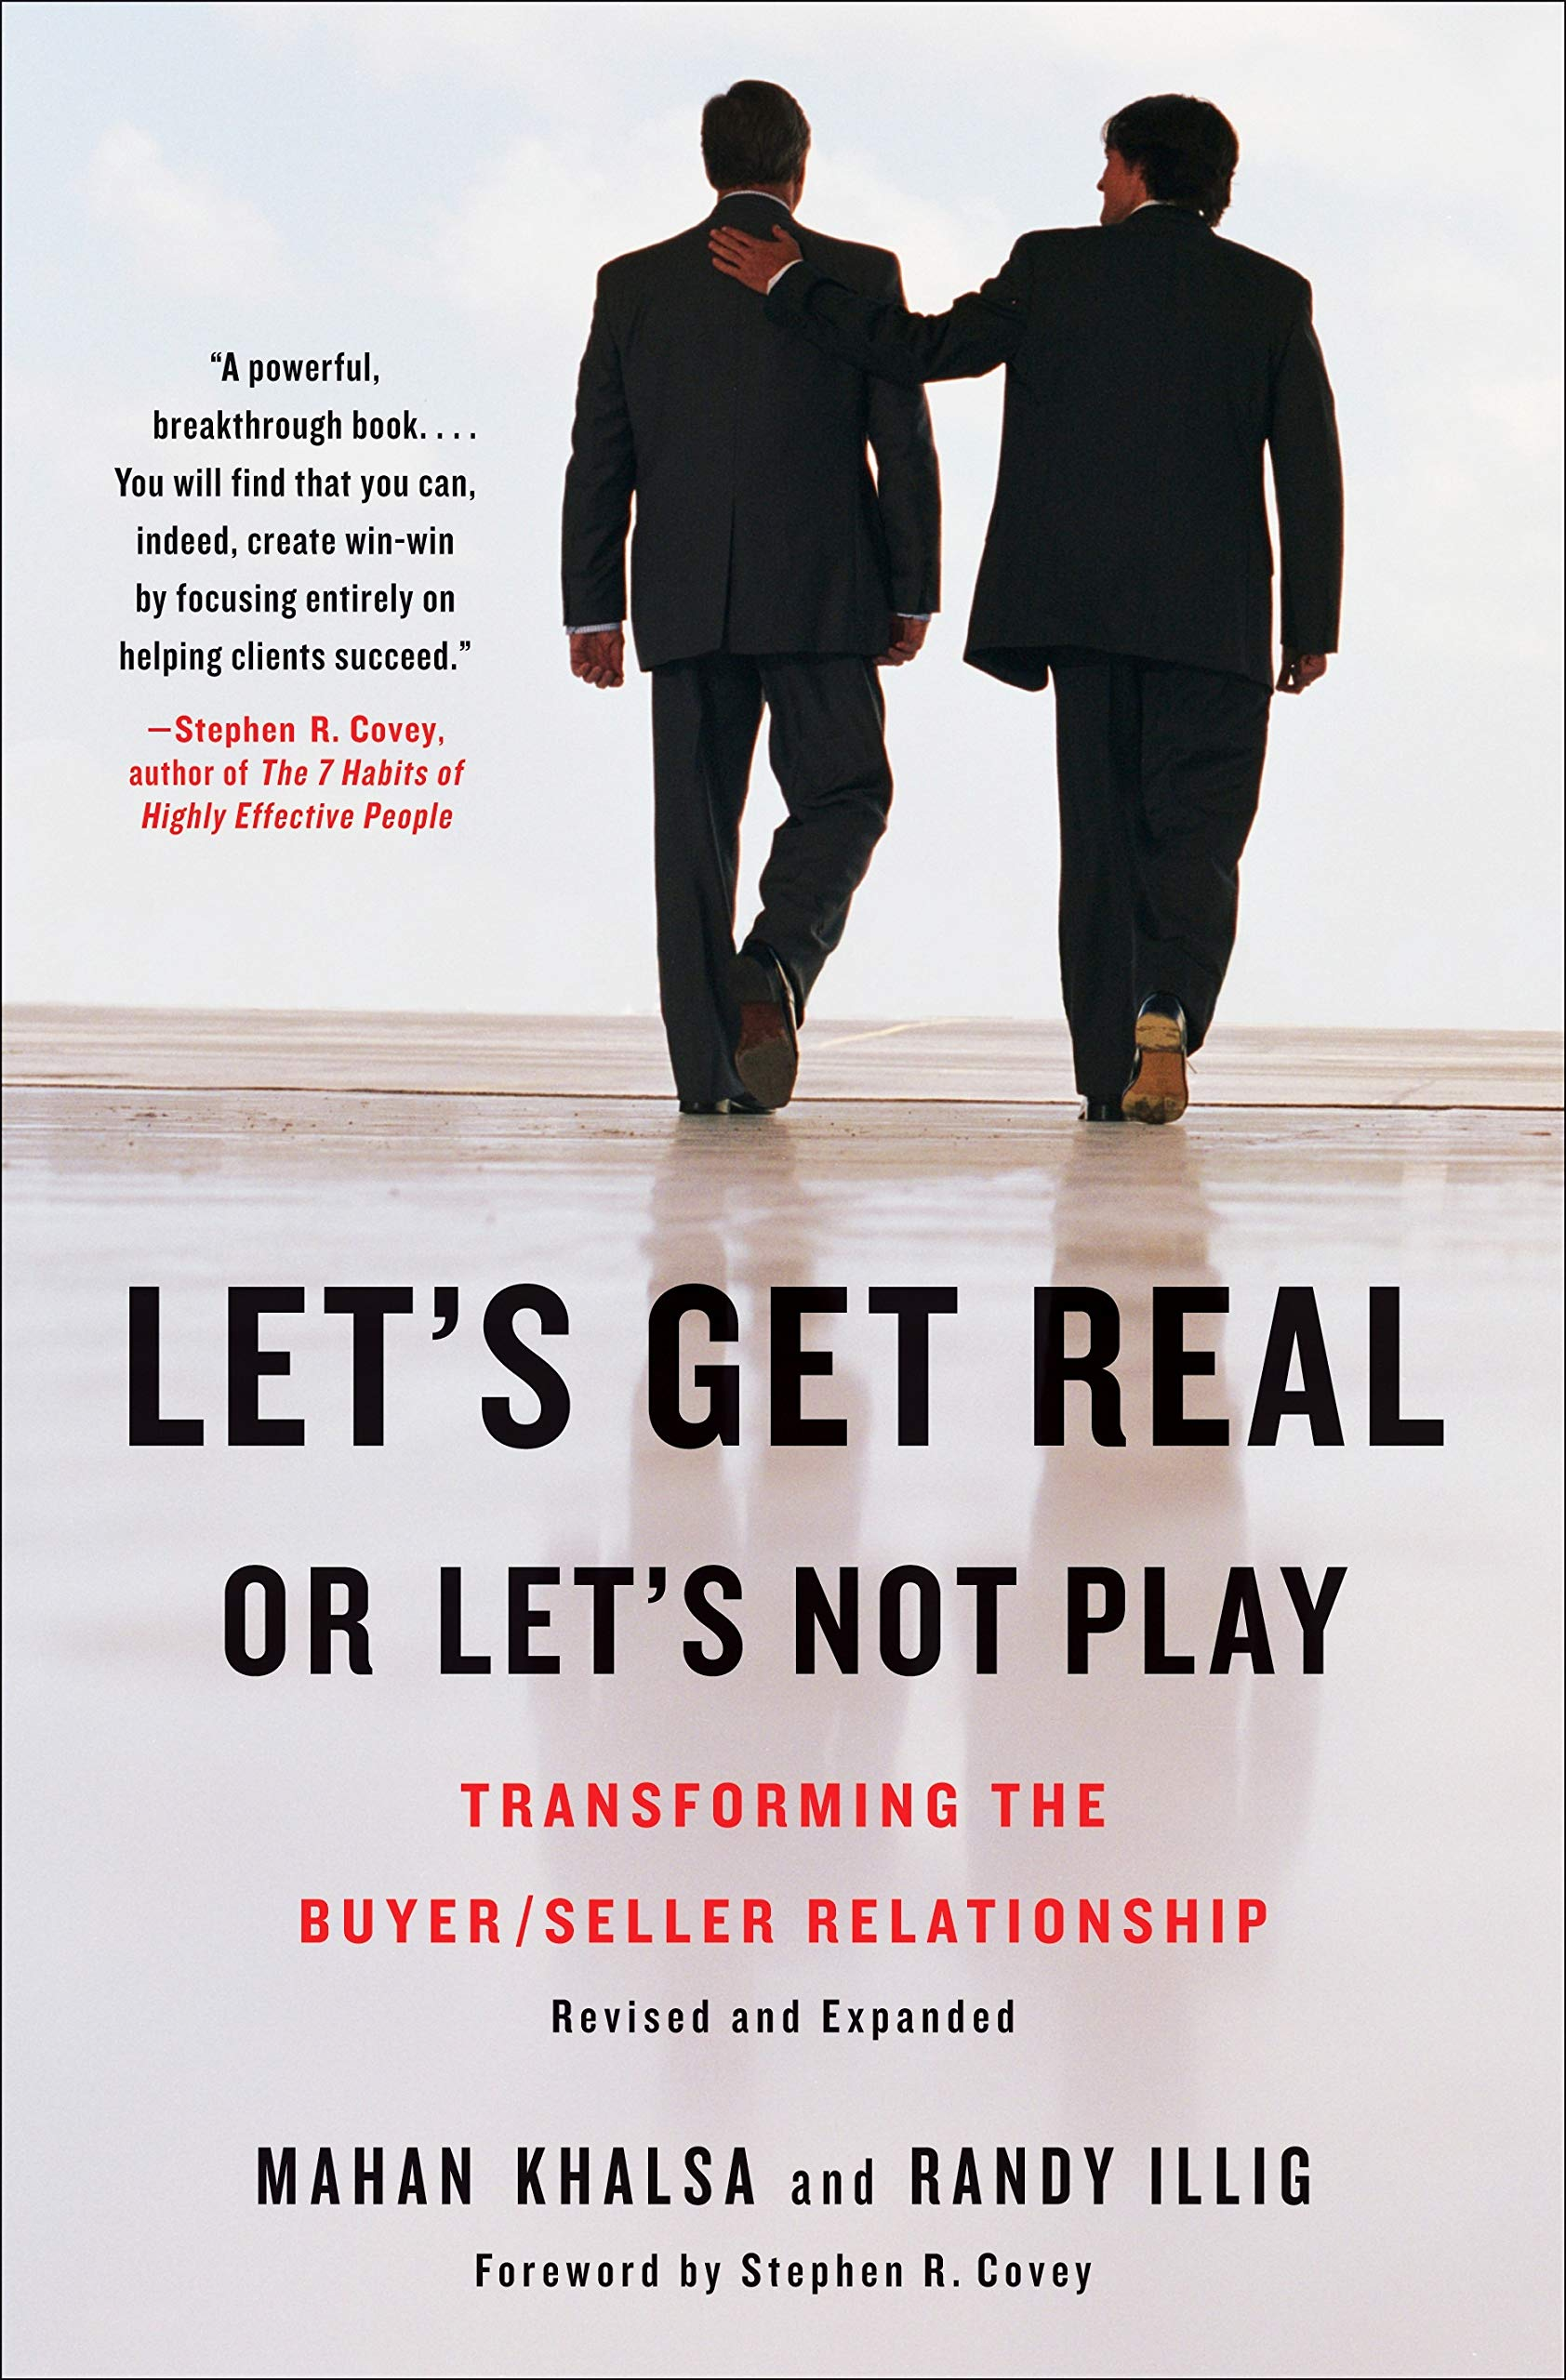 Image OfLet's Get Real Or Let's Not Play: Transforming The Buyer/Seller Relationship